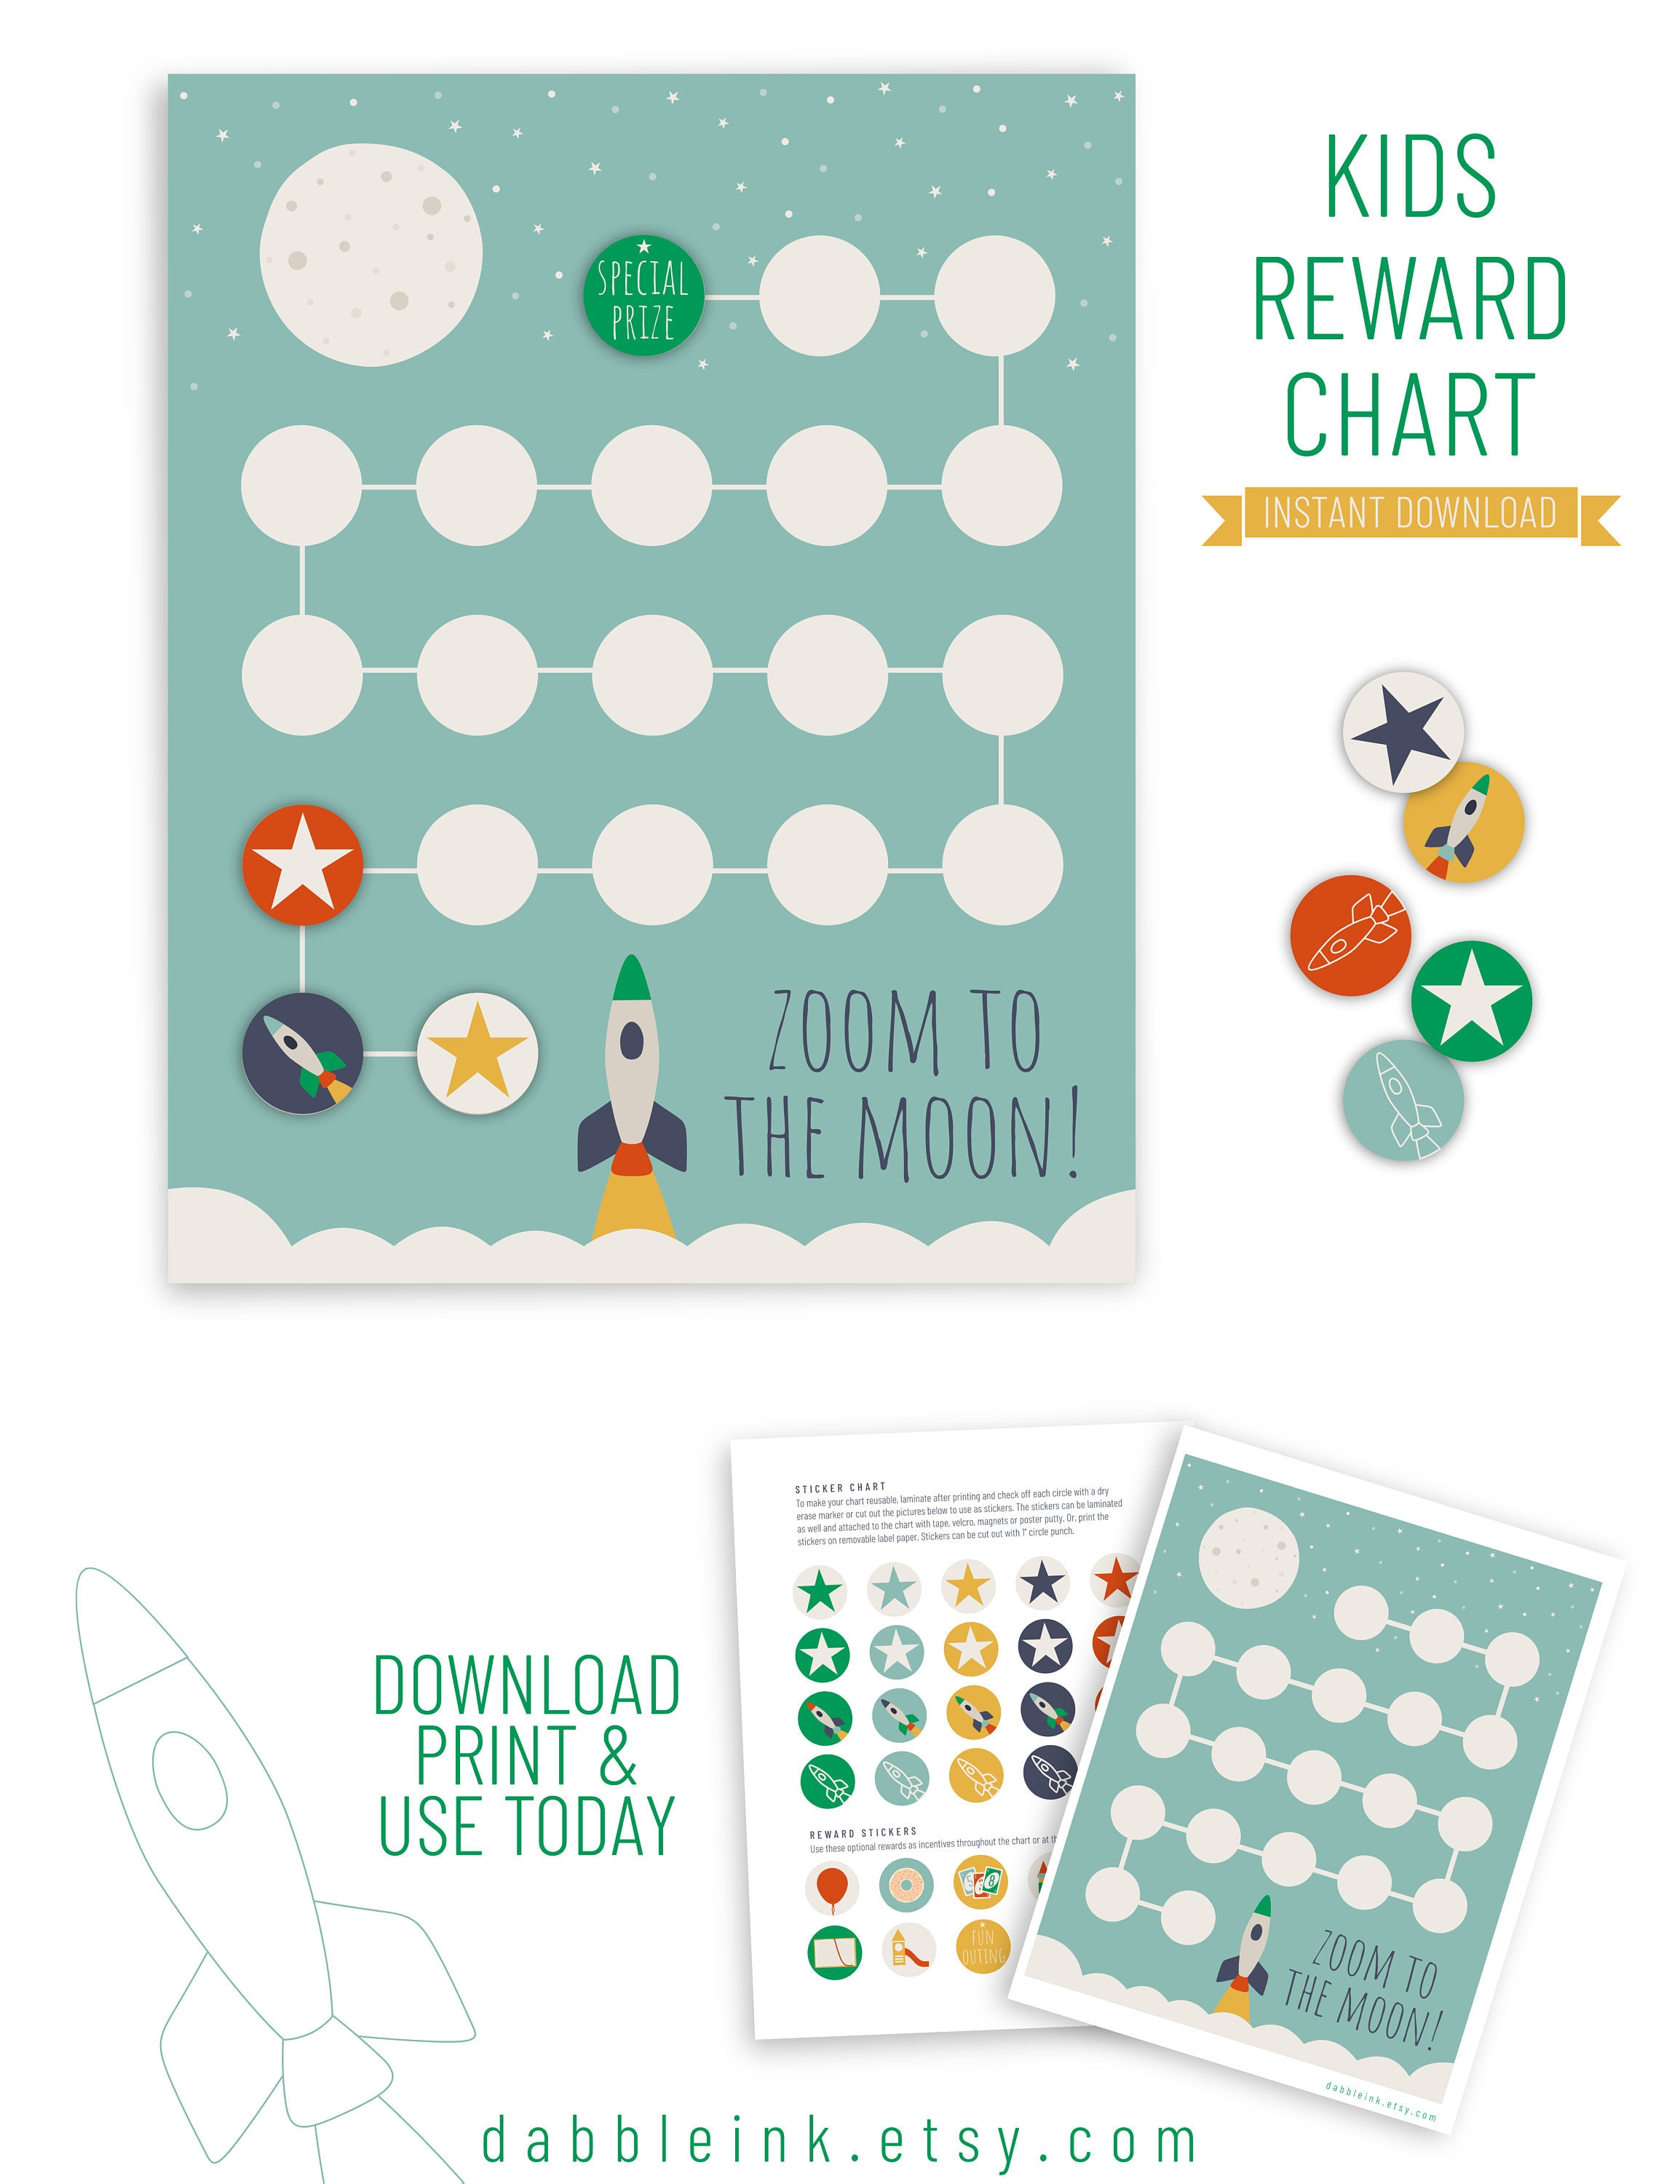 picture about Sticker Reward Chart Printable referred to as Gain Chart Printable I Obtain I Advantage Stickers I Habits Chart I Potty Performing exercises Gain Chart I Gain Chart for Babies